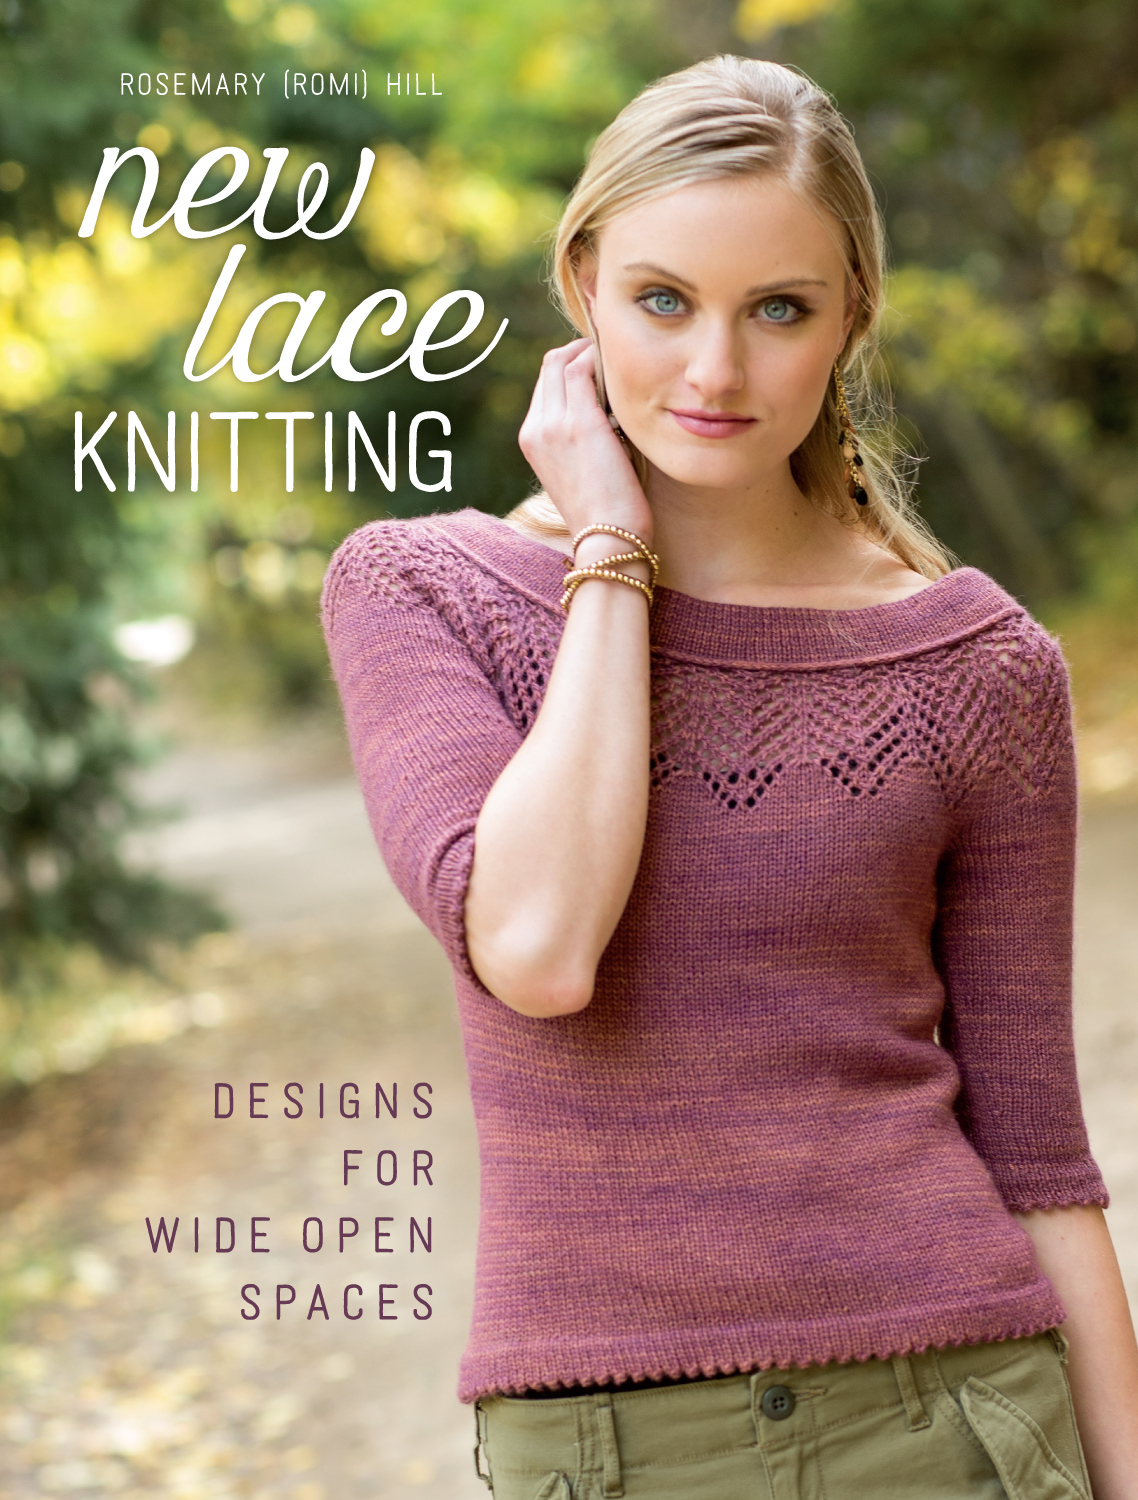 New Lace Knitting cover